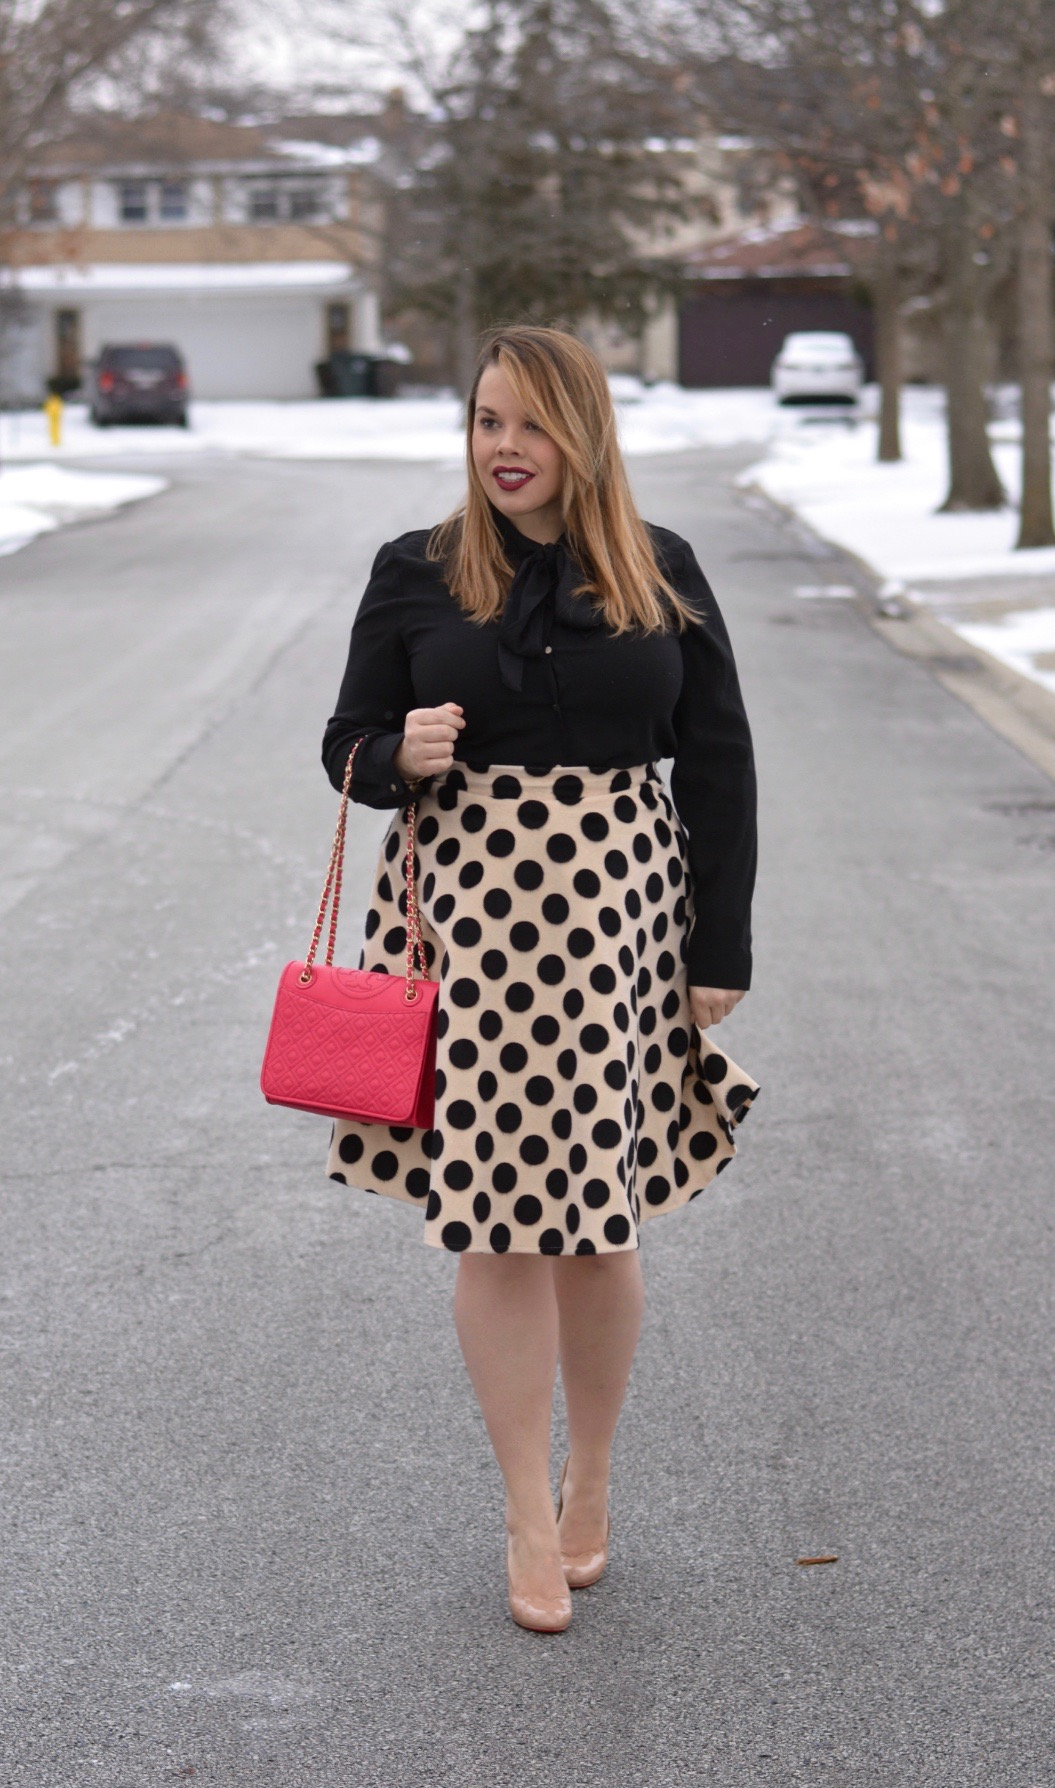 workwear wednesday- polka dot midi 5